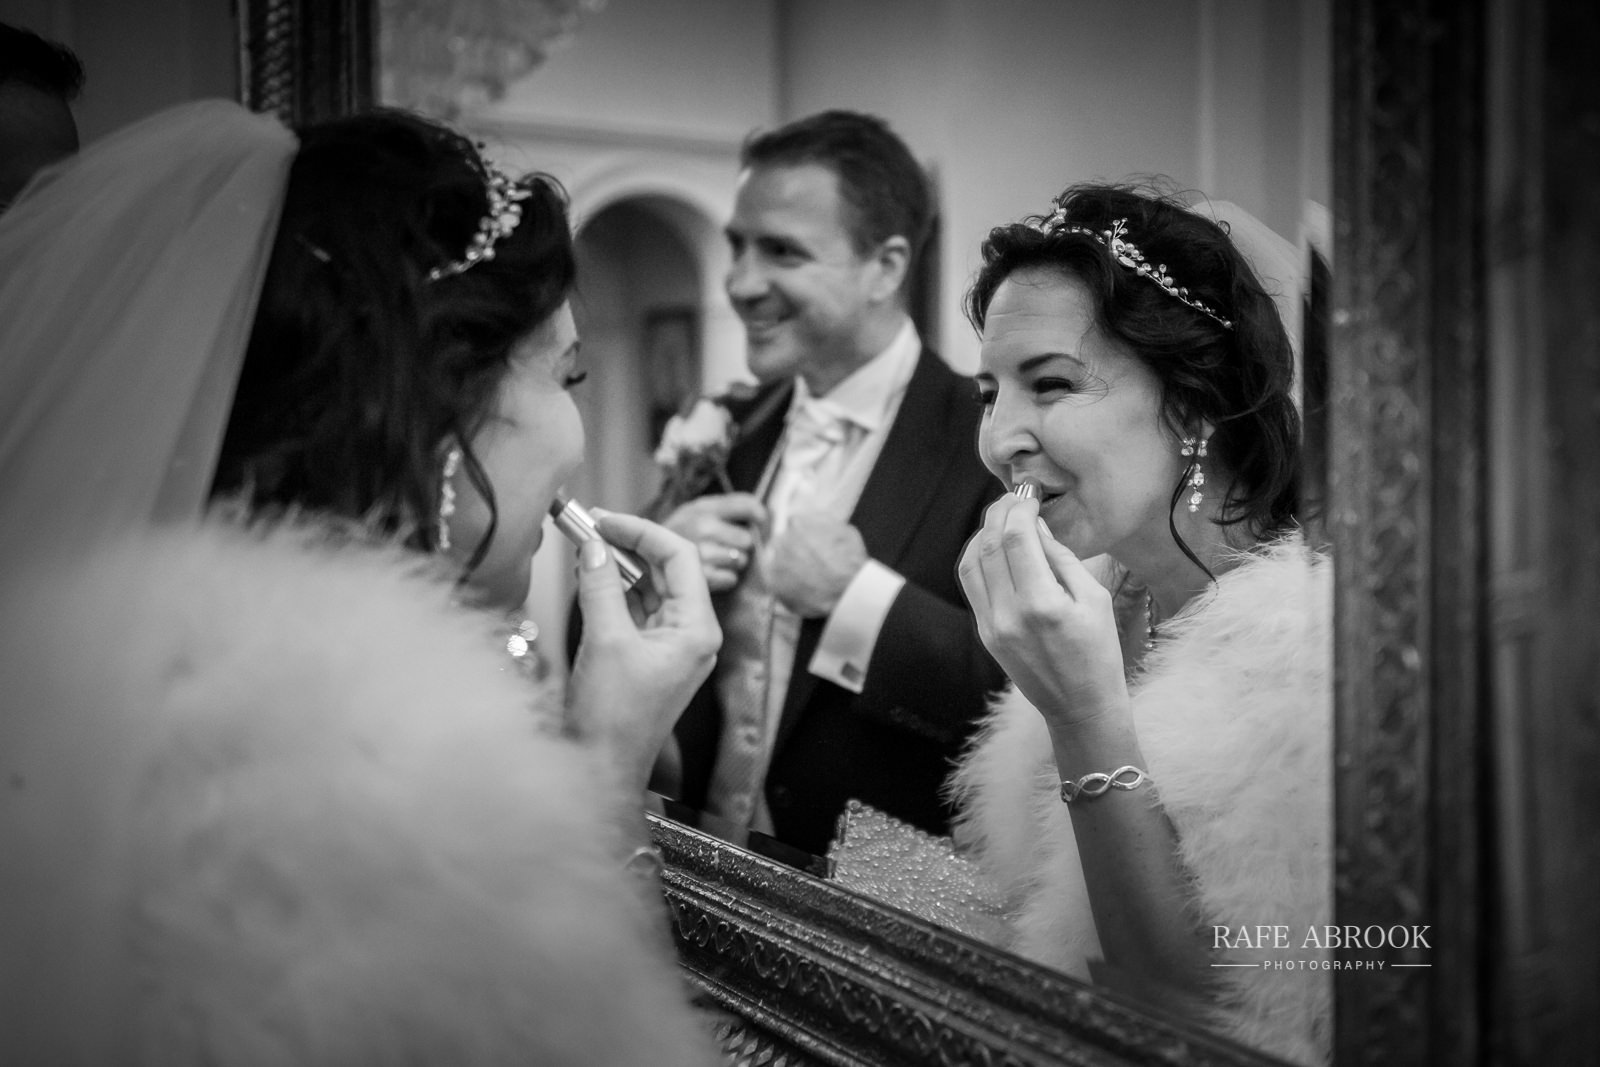 goldsborough hall wedding harrogate knaresborough yorkshire hertfordshire wedding photographer-1262.jpg